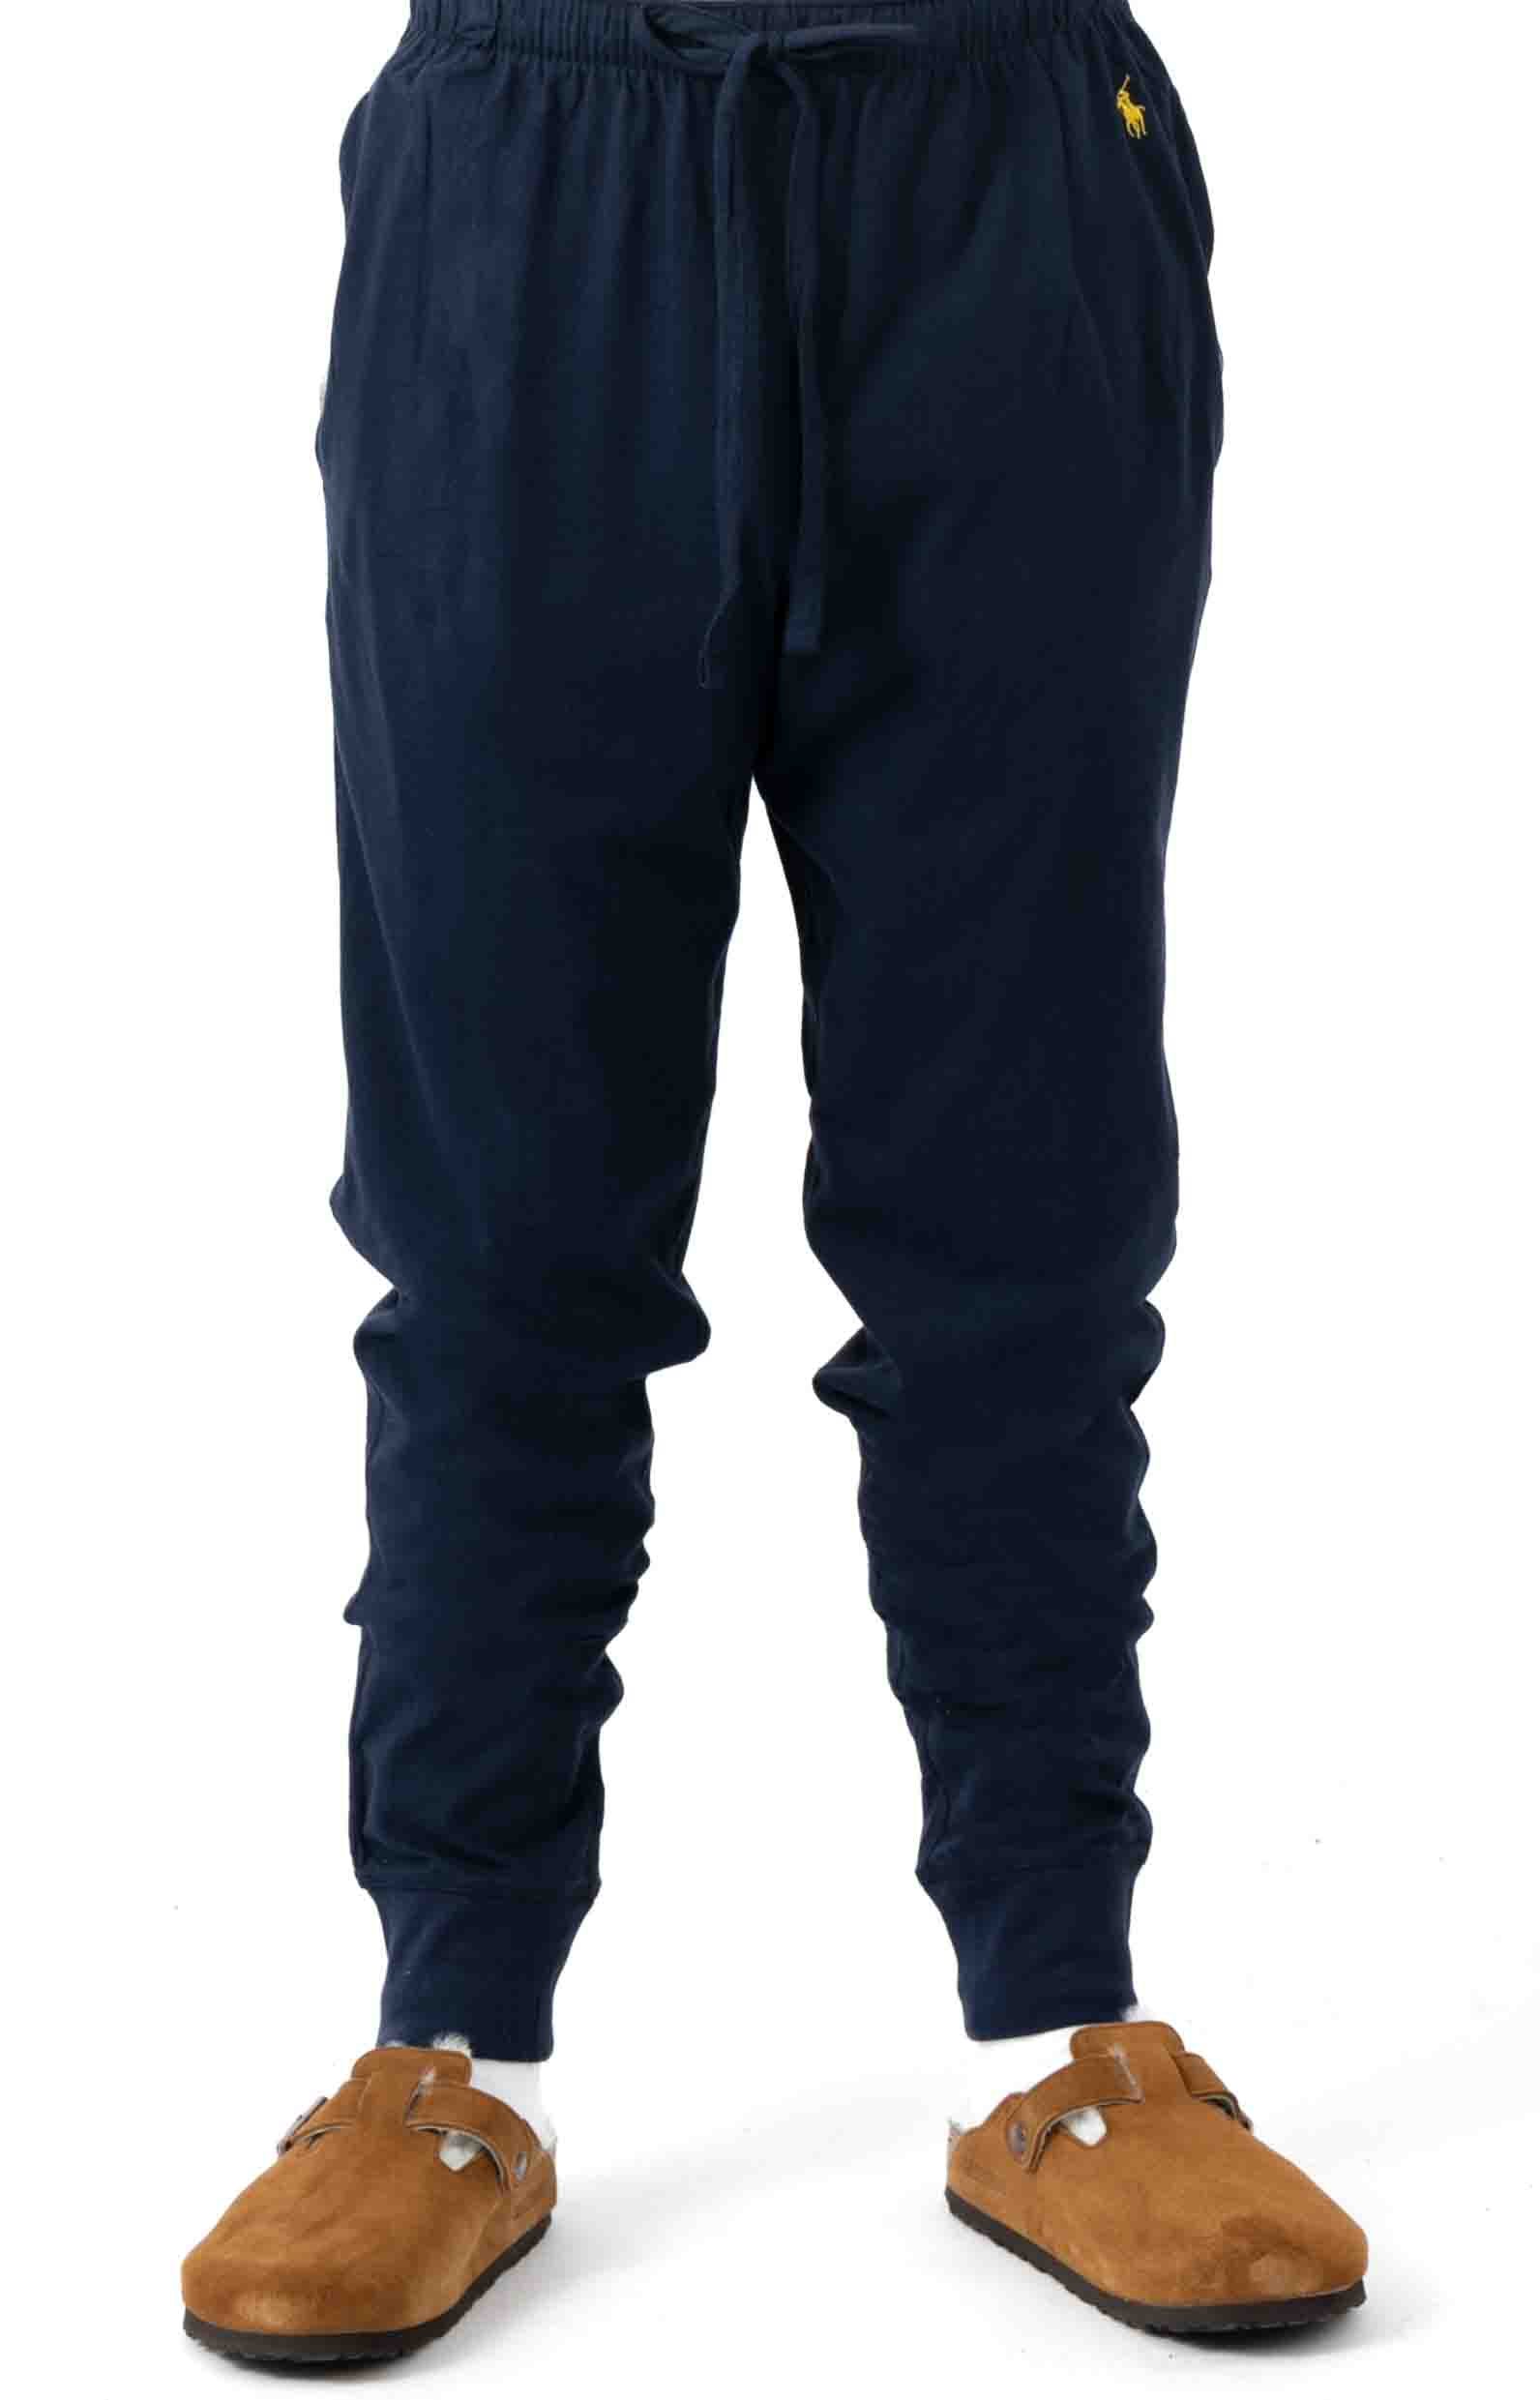 (L2049V) Relaxed Fit Jogger Cuff Sleep Pant - Cruise Navy 2